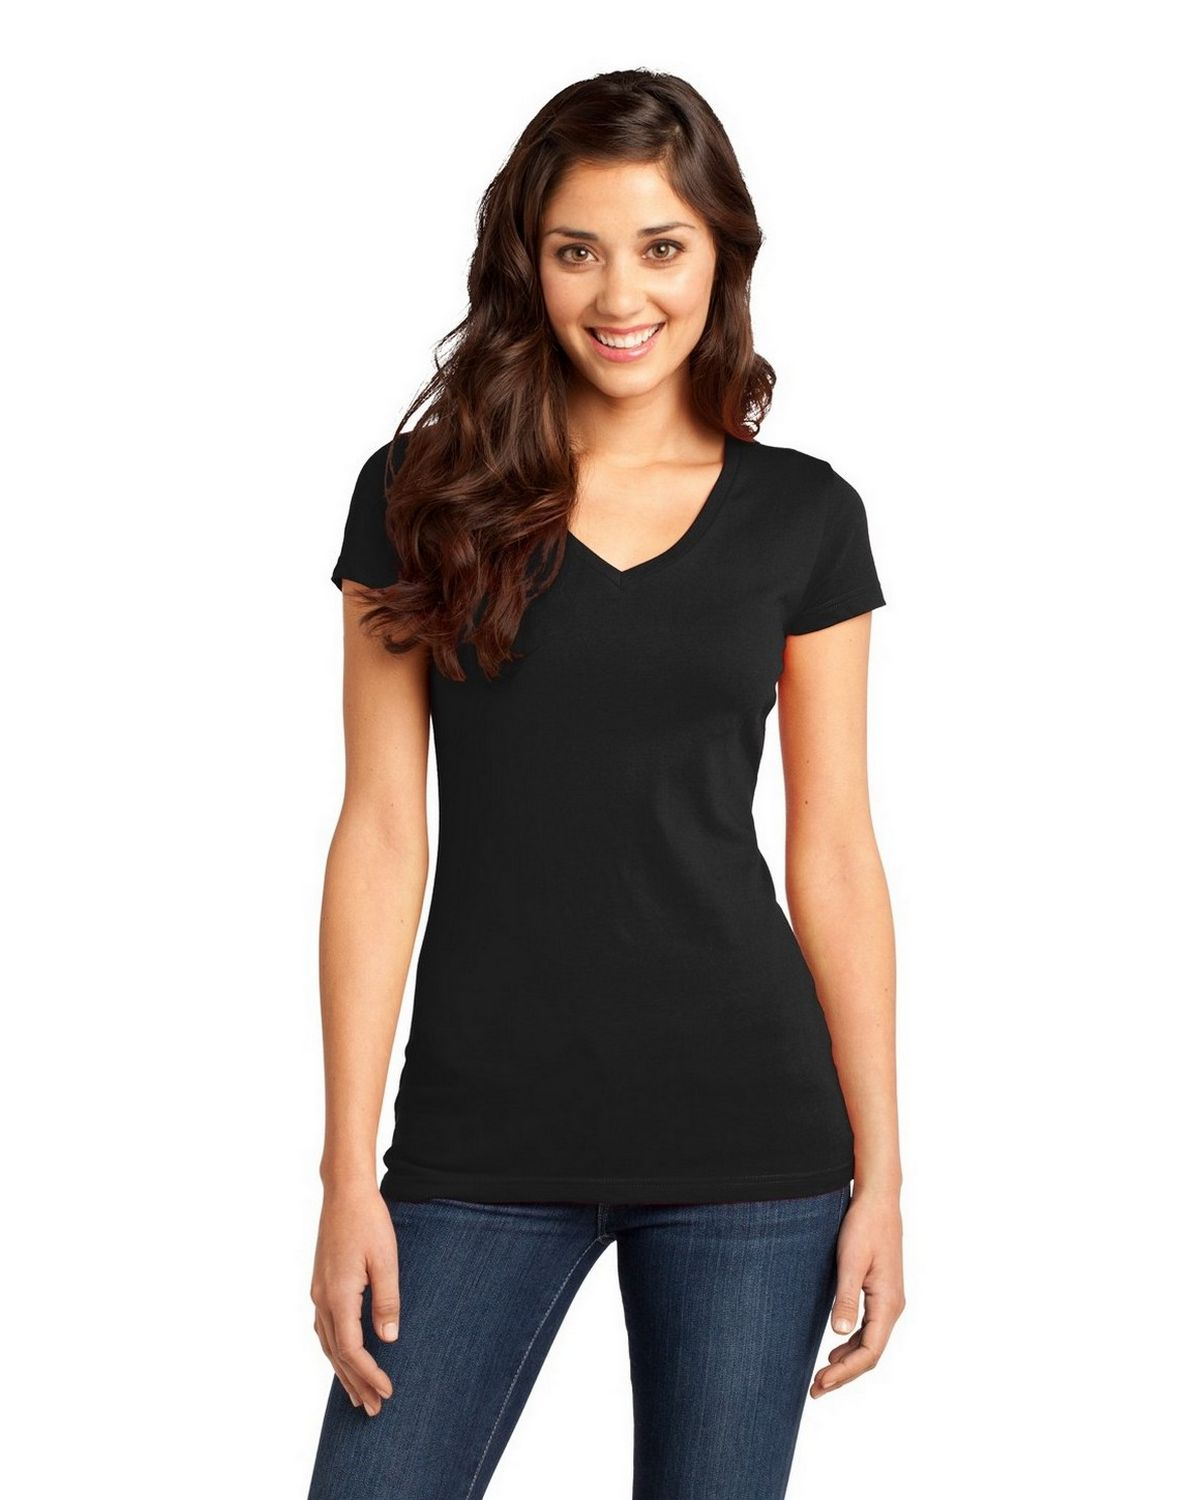 District DT6501 Juniors Very Important V-Neck Tee - Black - M DT6501